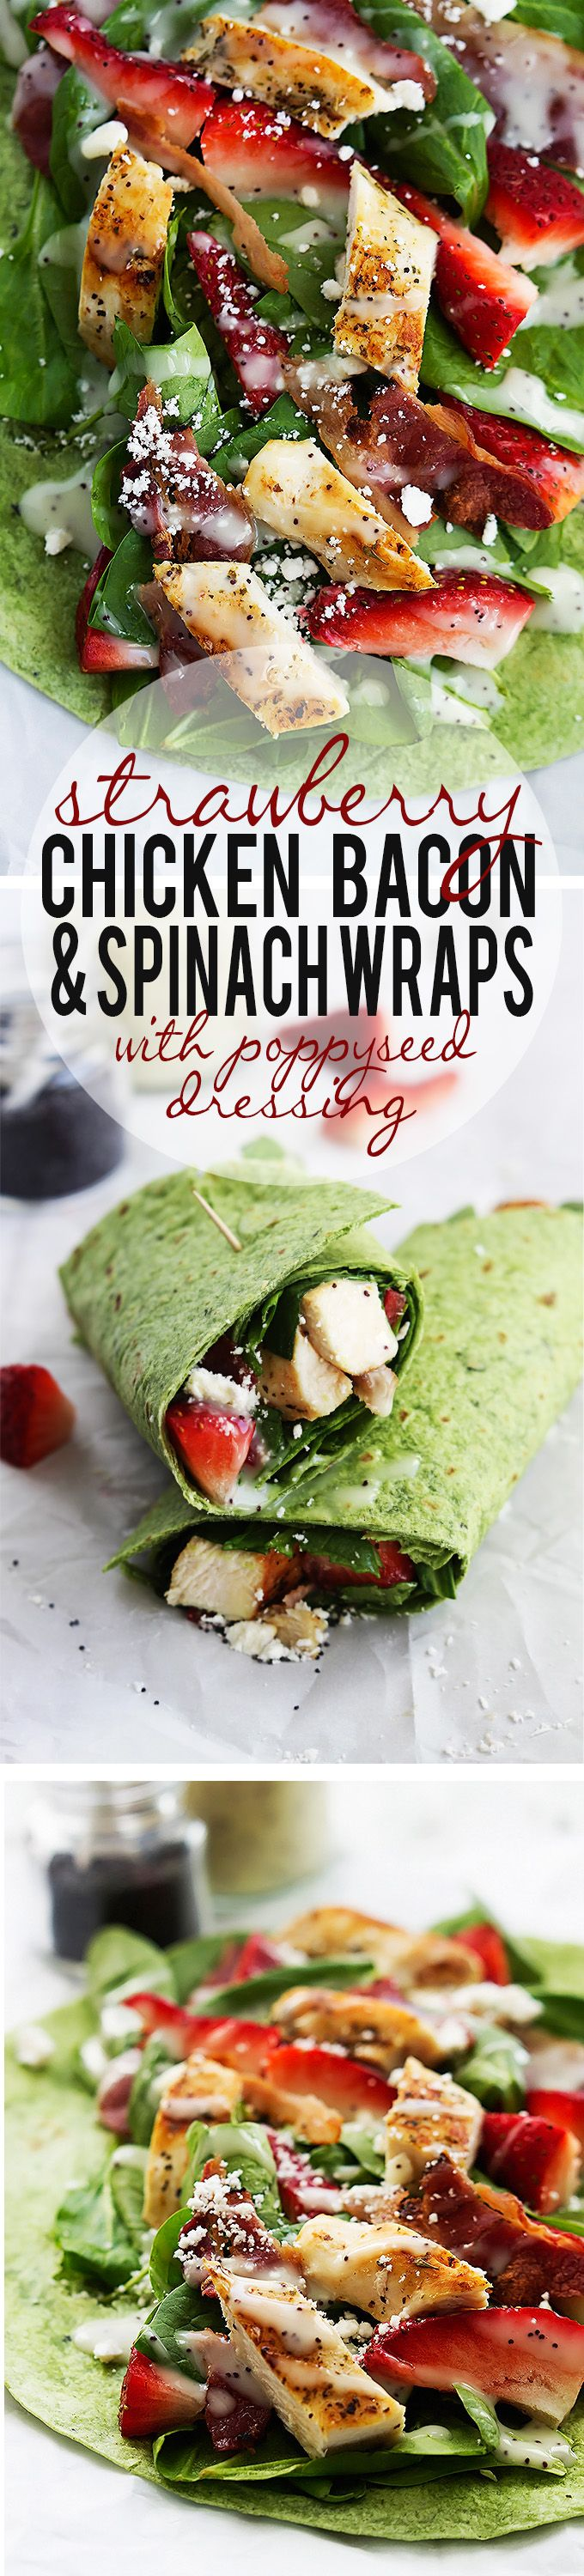 Strawberry chicken bacon & spinach wraps with creamy poppyseed dressing. Easy, fast, healthy, and soooo delicious.